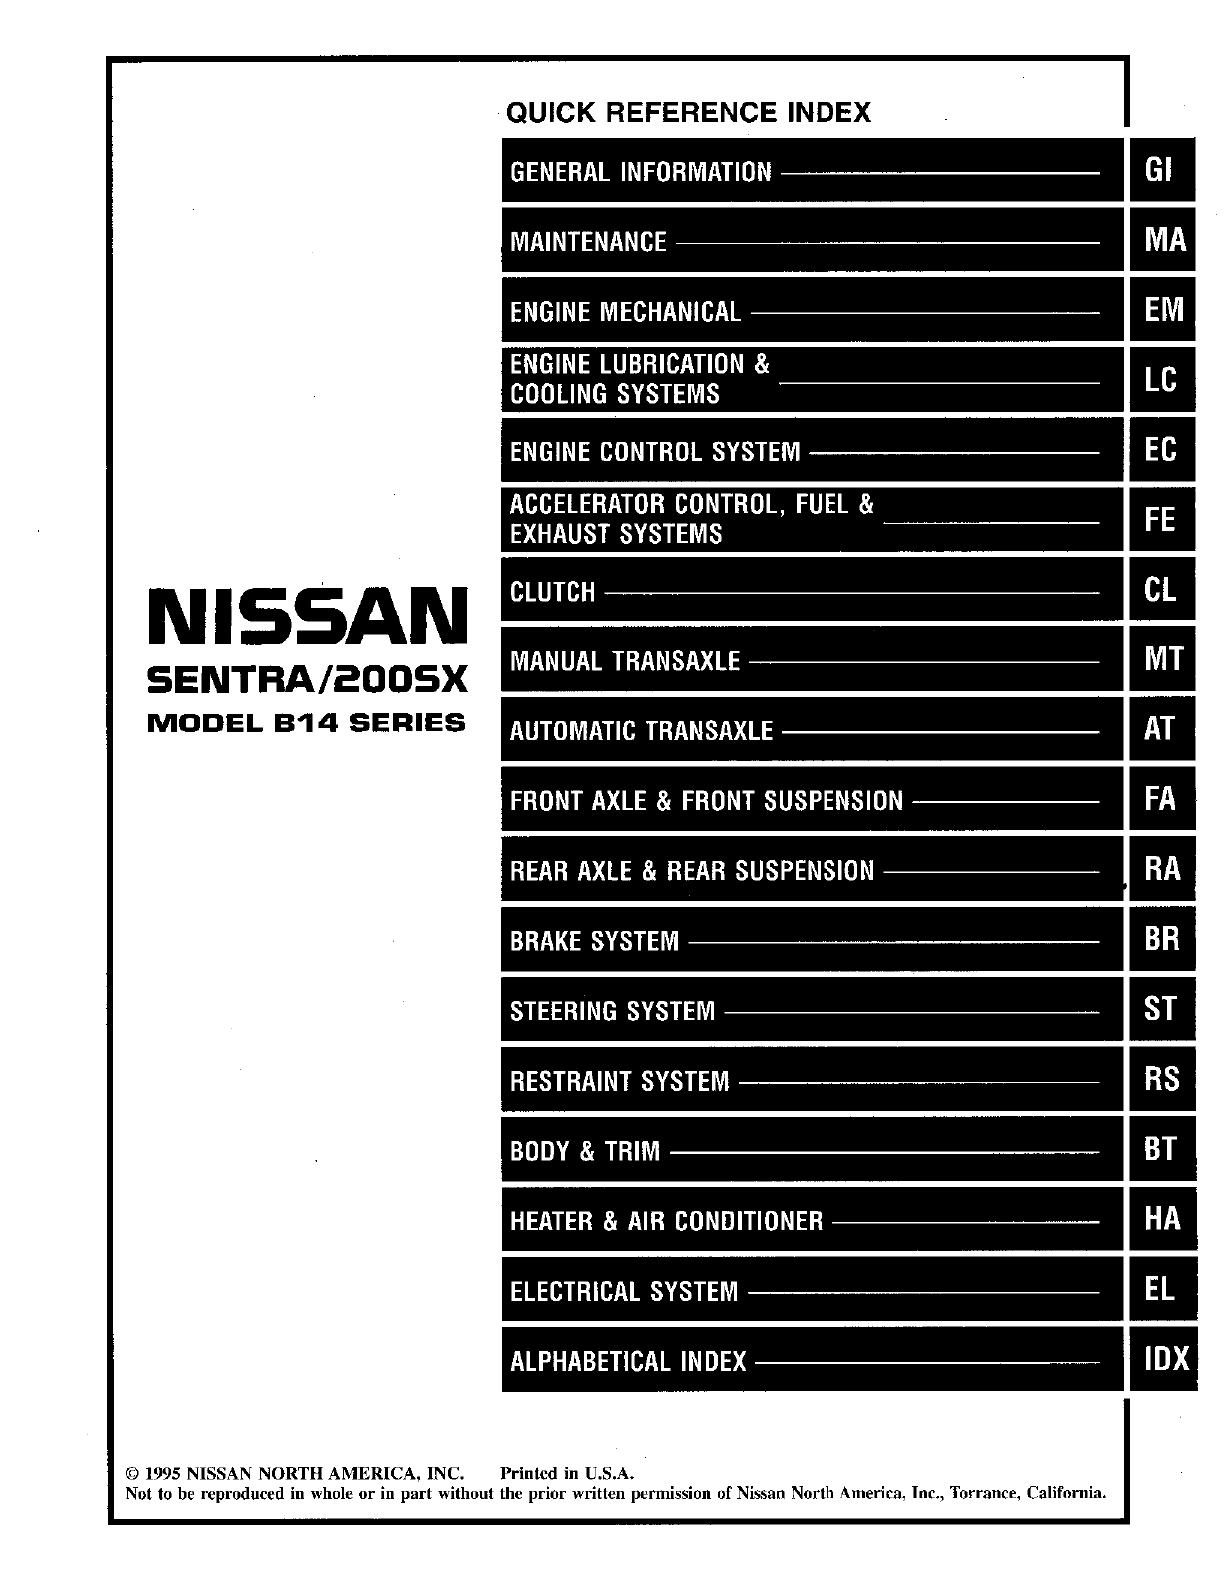 nissan sentra 1996 workshop manual pdf rh manuals co 1997 Nissan Sentra  Airbag Wire 1996 nissan sentra service manual